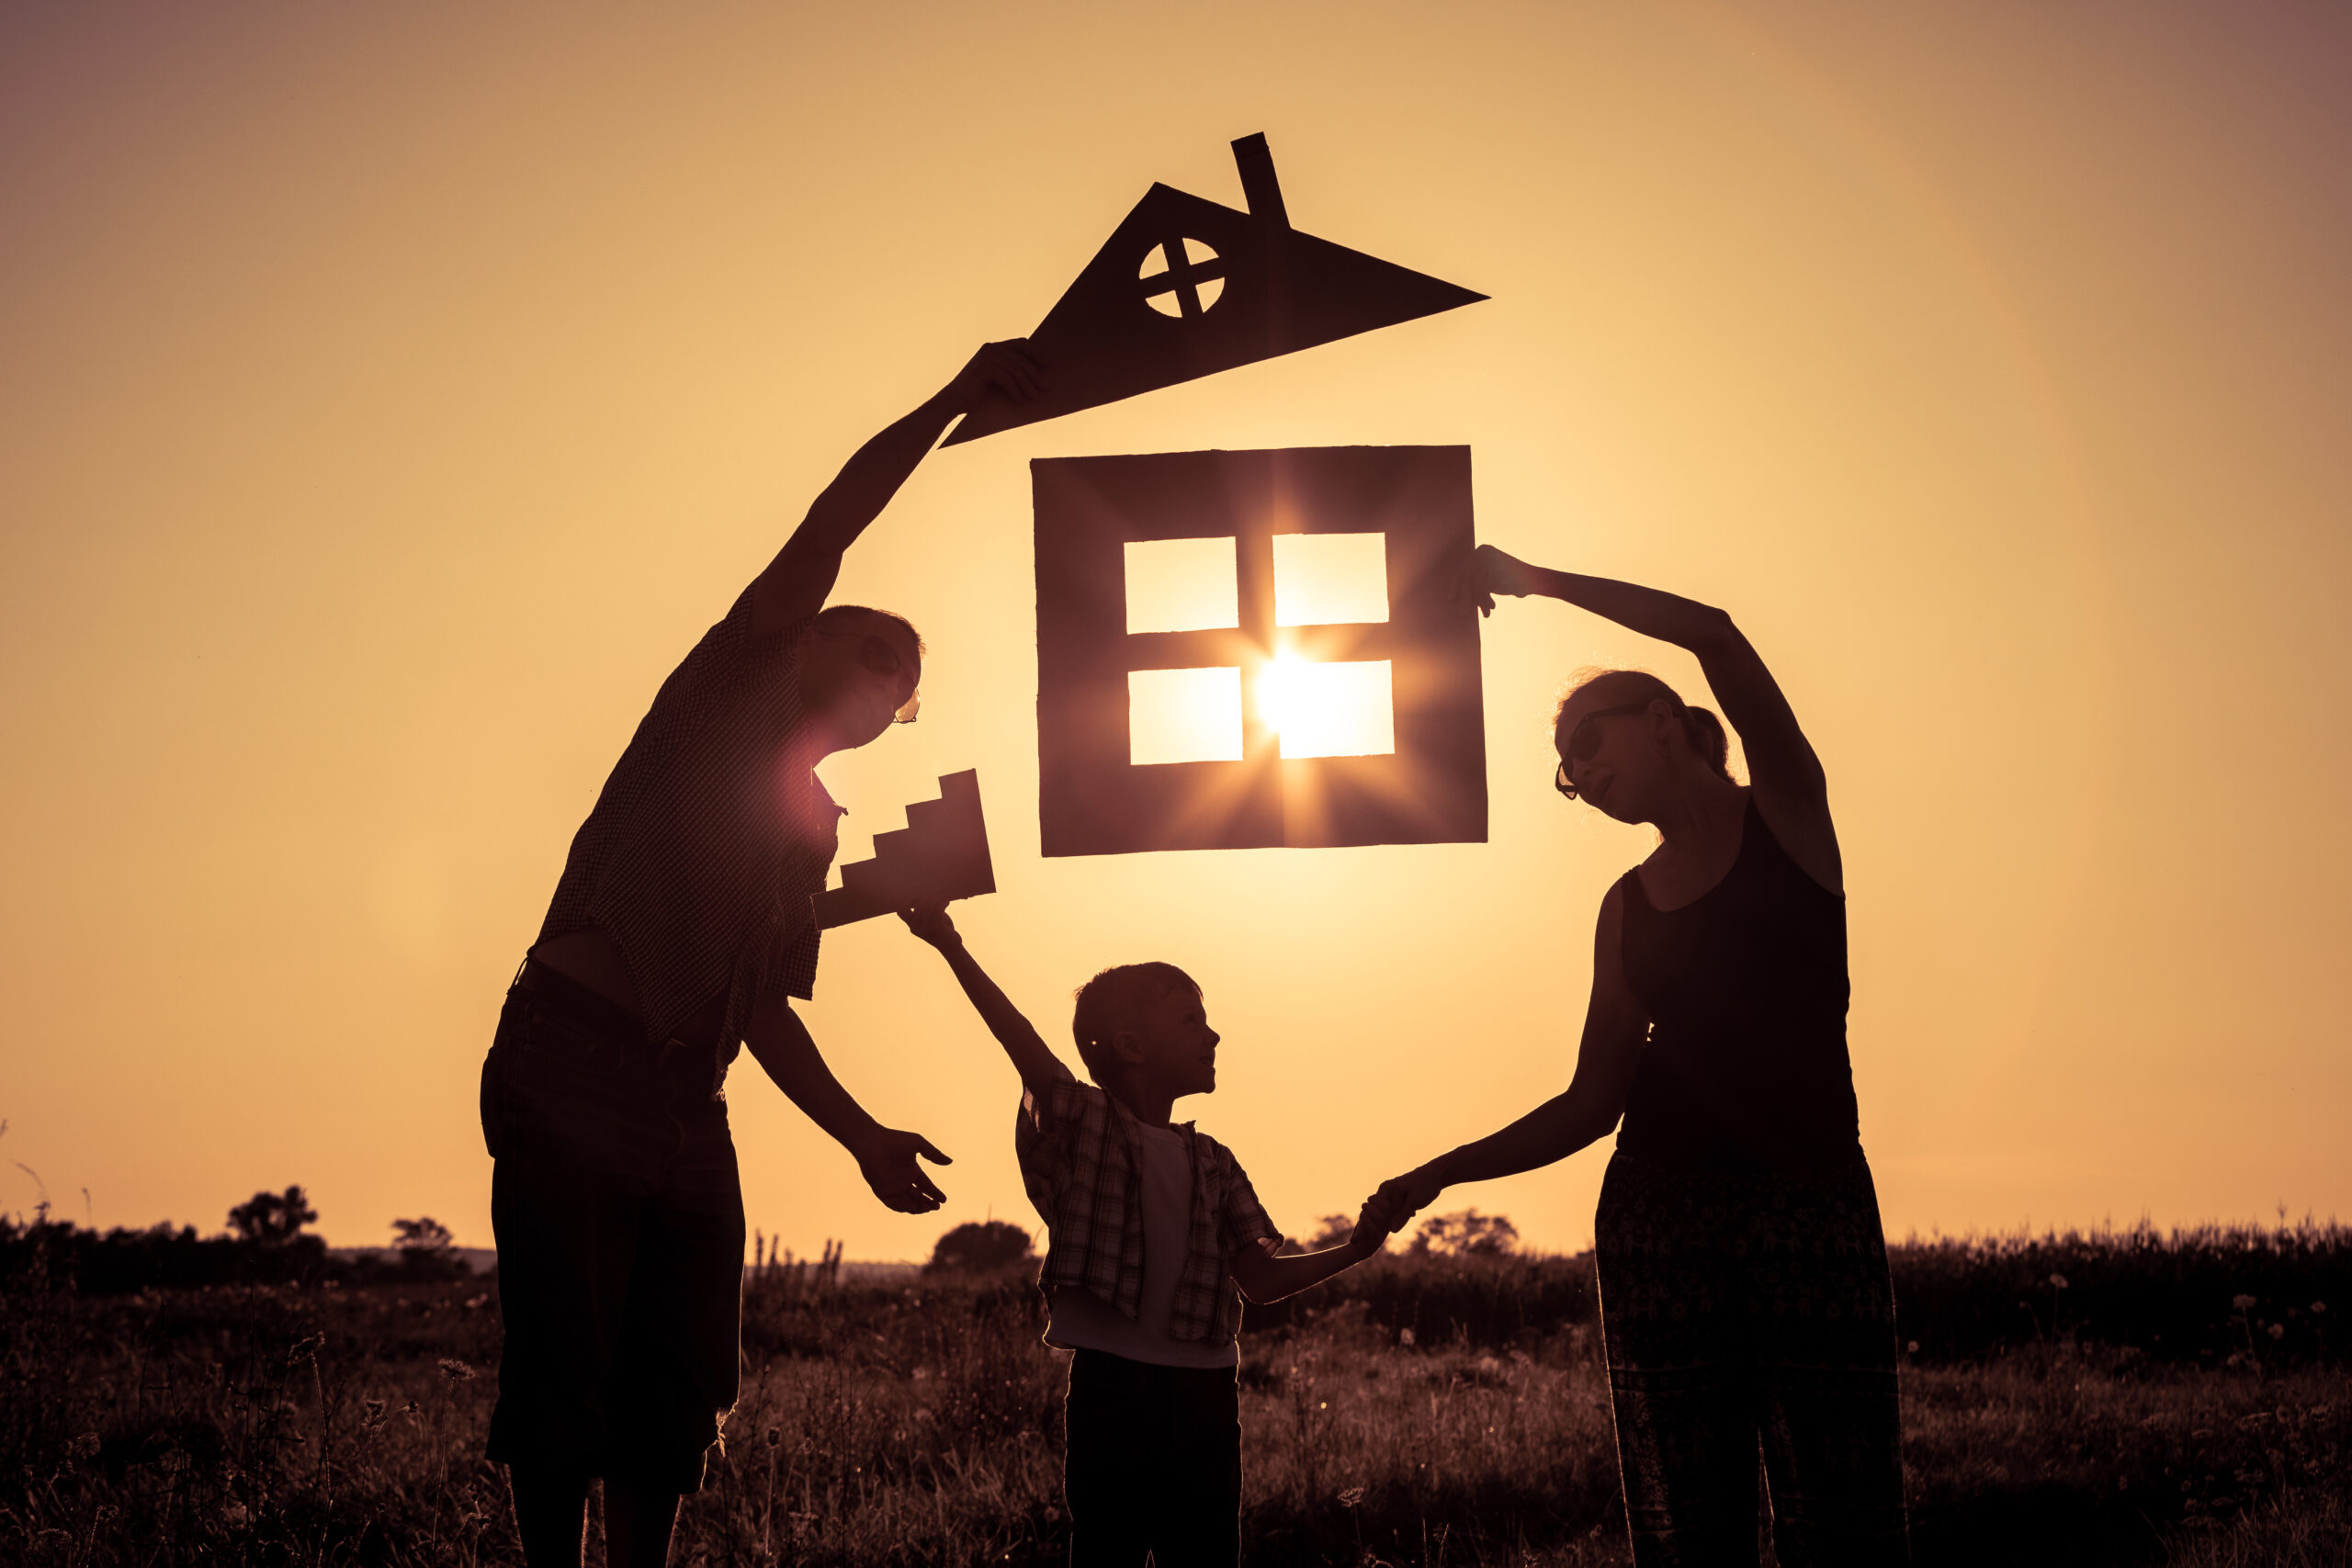 Stock photo of a family holding a cutout of a house with the sun shining through it.